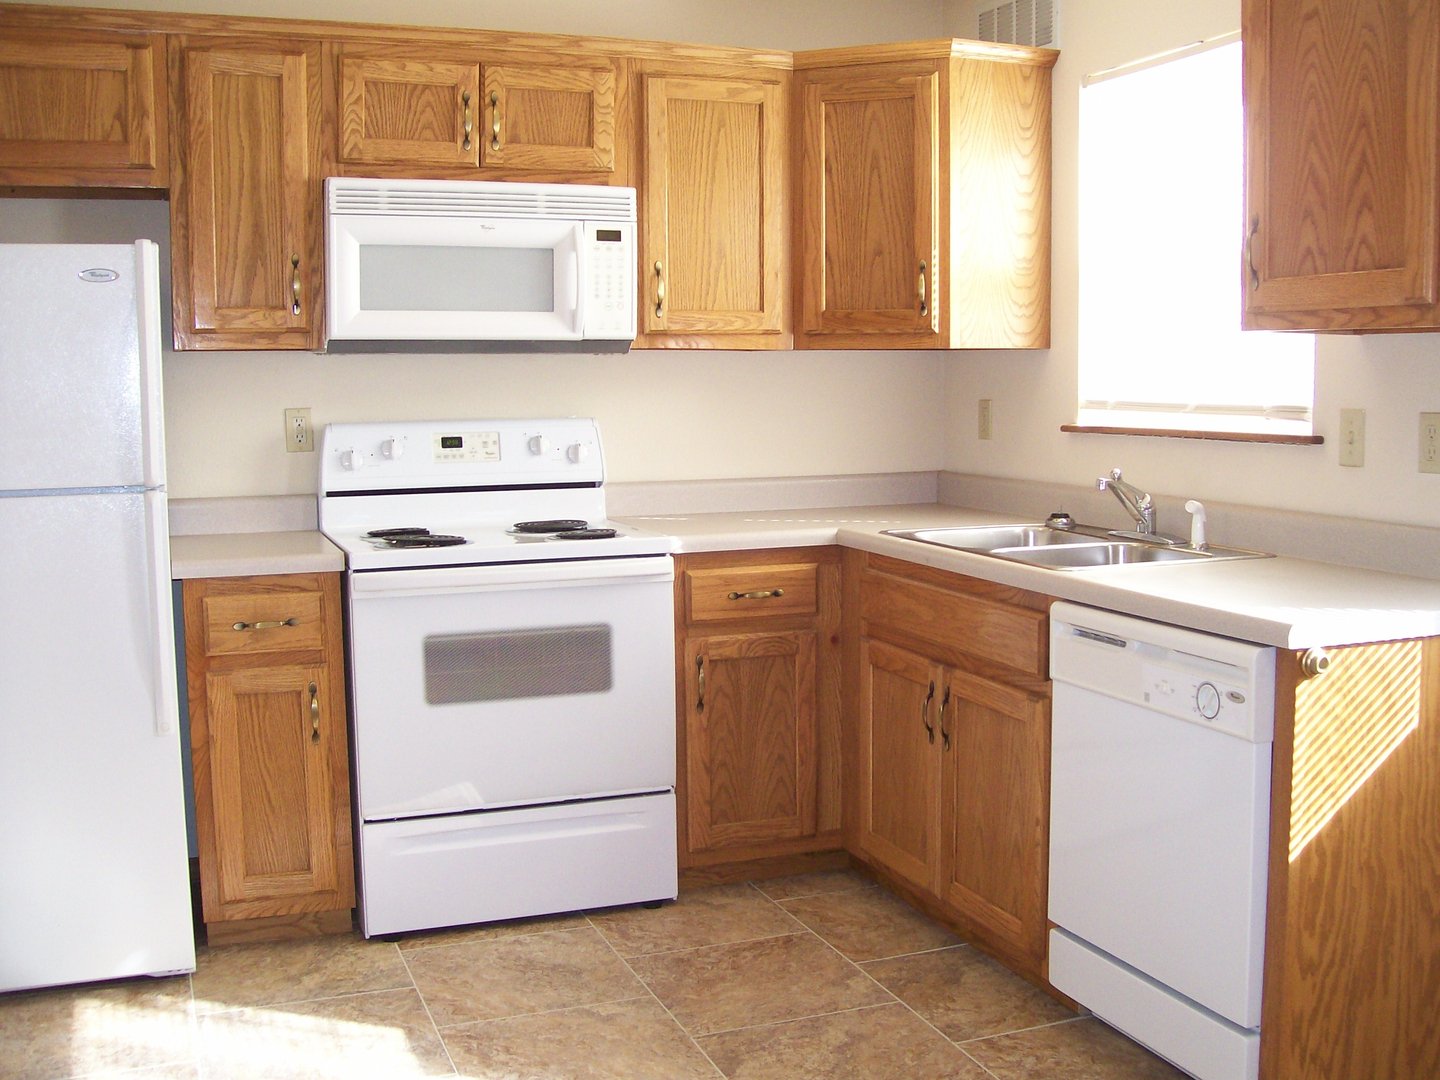 garage apartments rent bakersfield dr for managua ca with